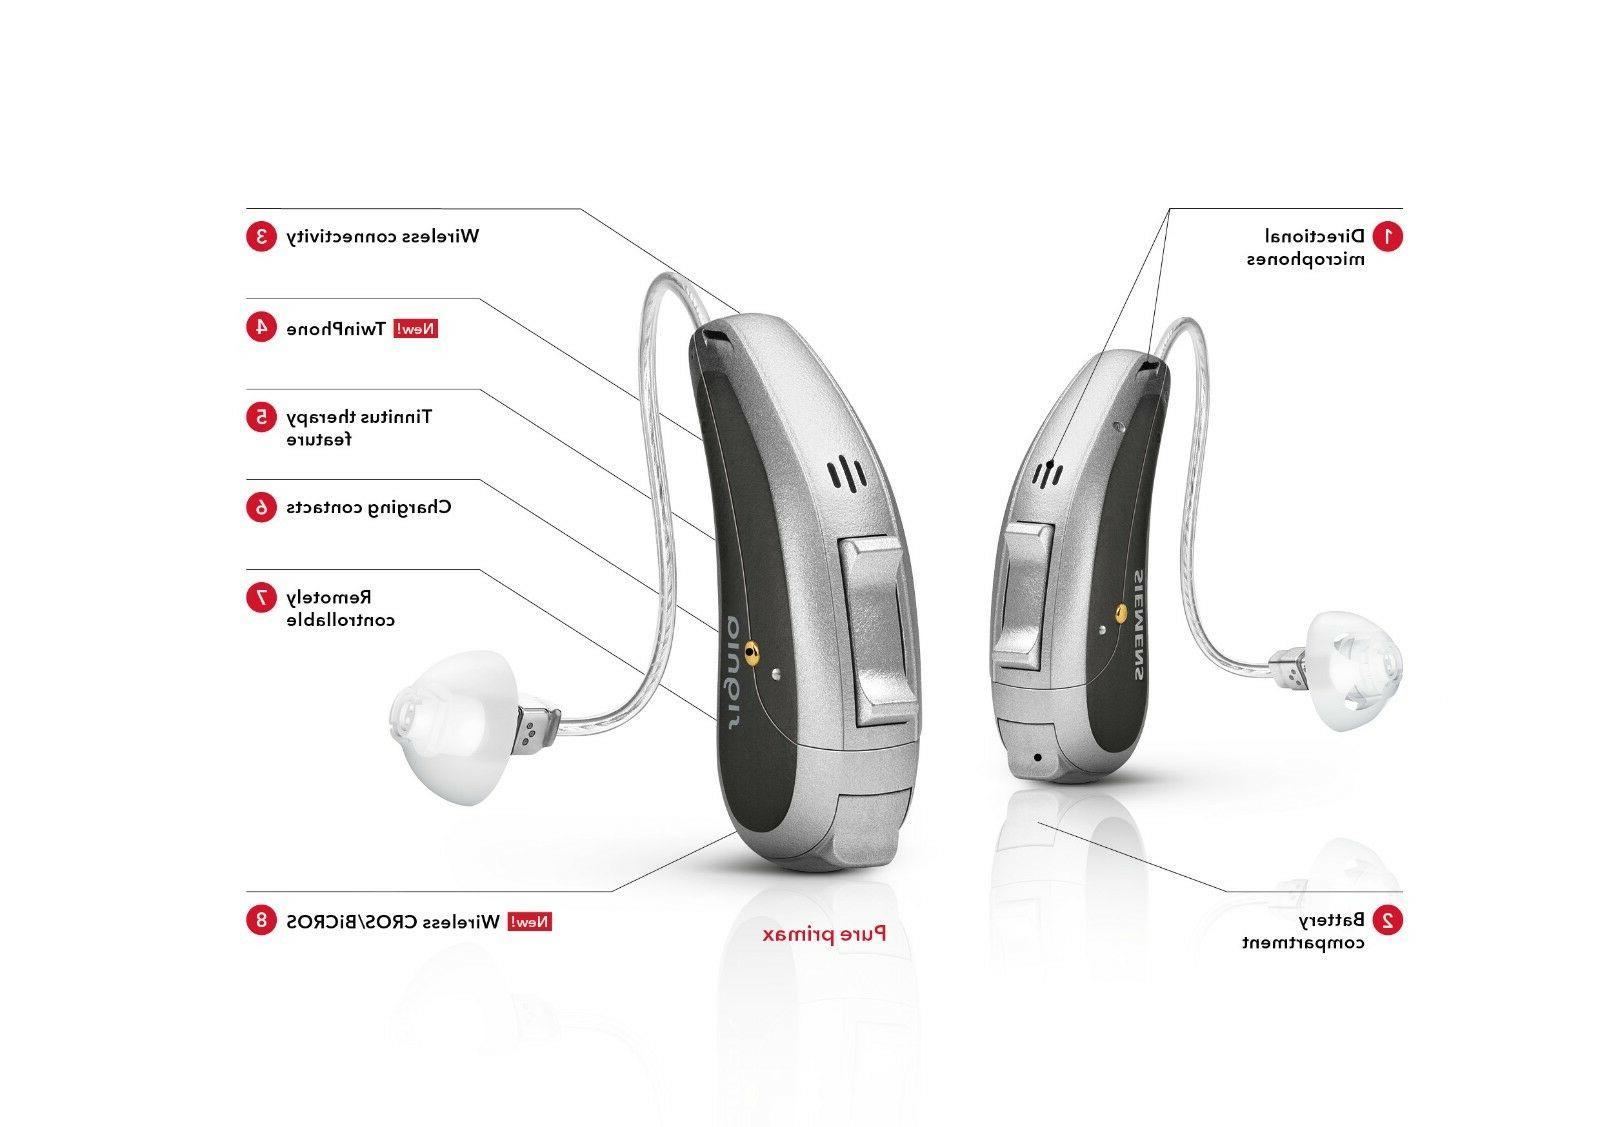 2PC New Siemens Signia Cellion 7px Rechargeable Hearing Aids